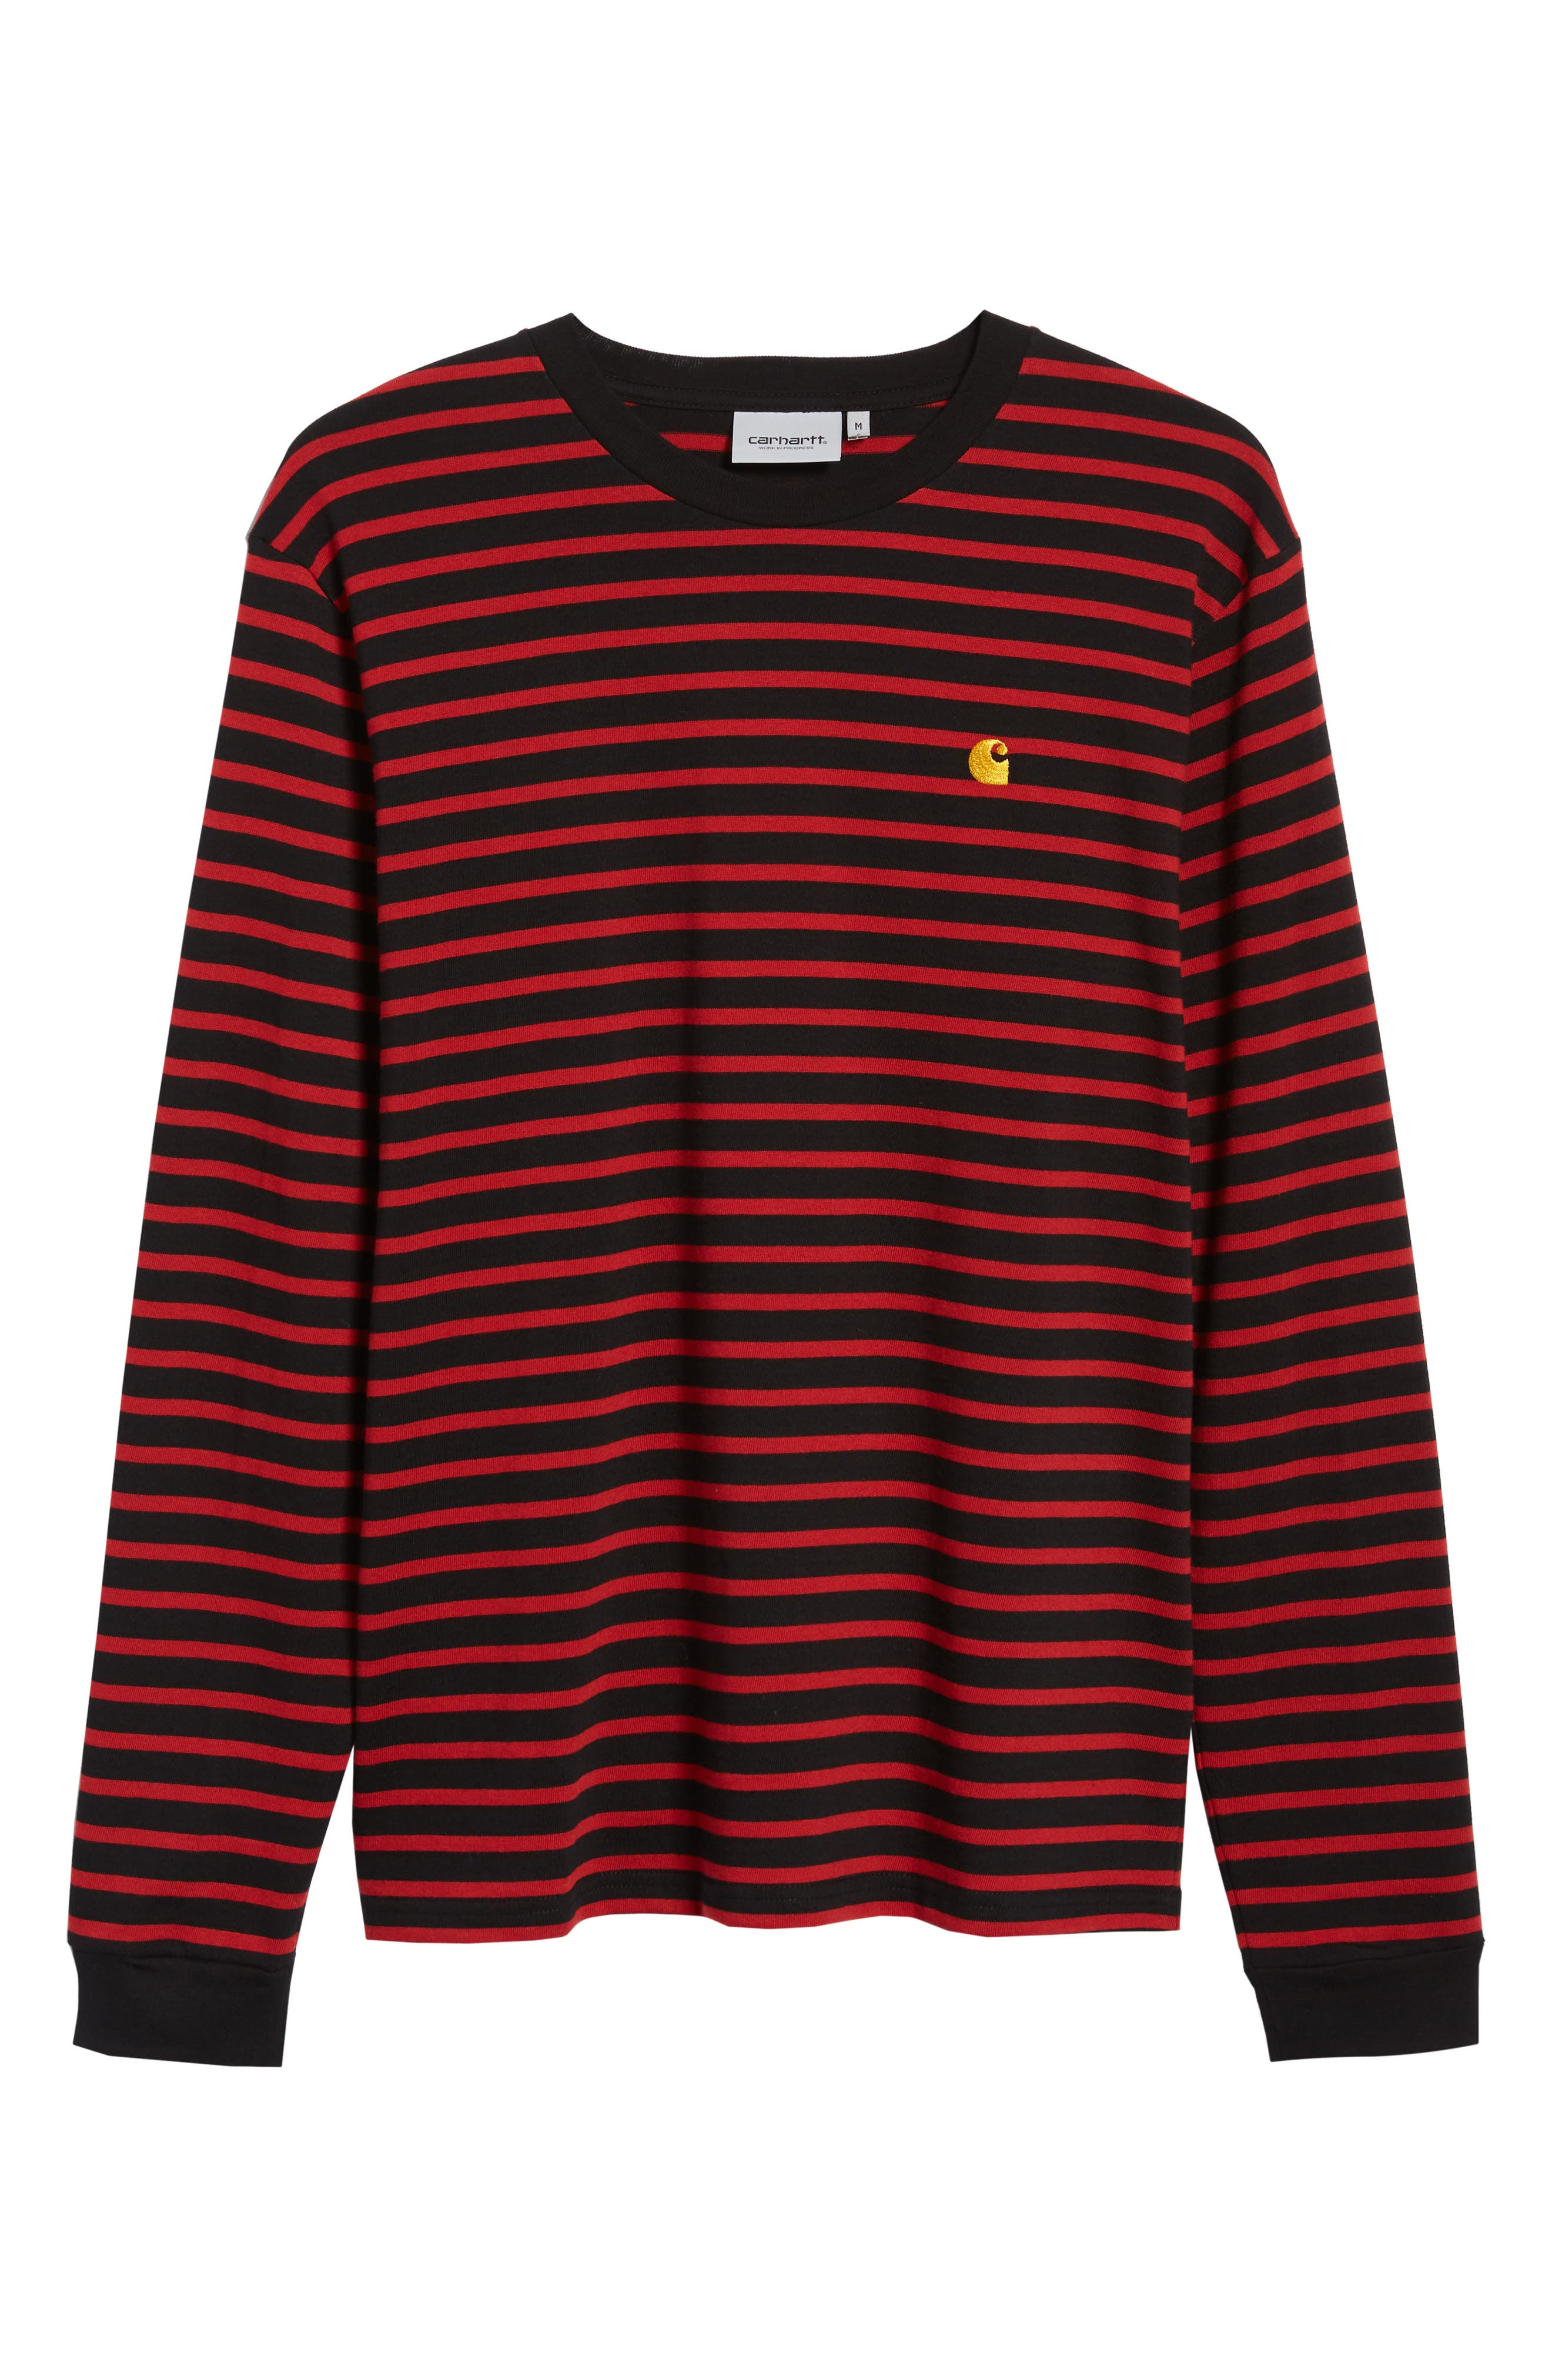 Long Sleeve Robie T-Shirt,                             Alternate thumbnail 5, color,                             BLACK/BLAST RED/QUINCE